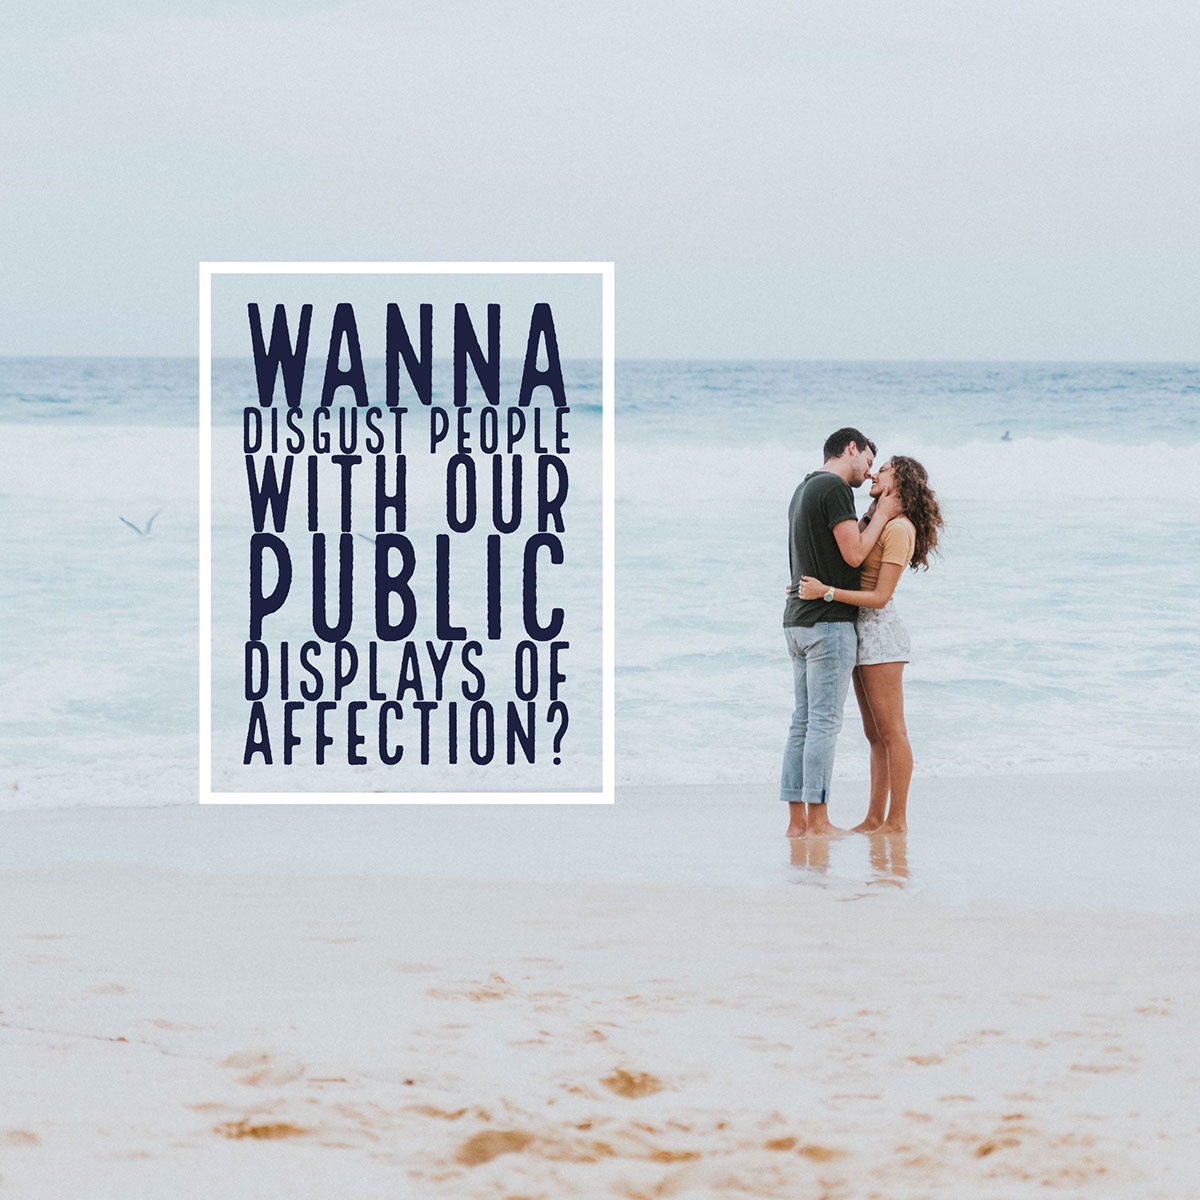 Wanna disgust people with our public displays of affection? Wanna disgust people with our public displays of affection?